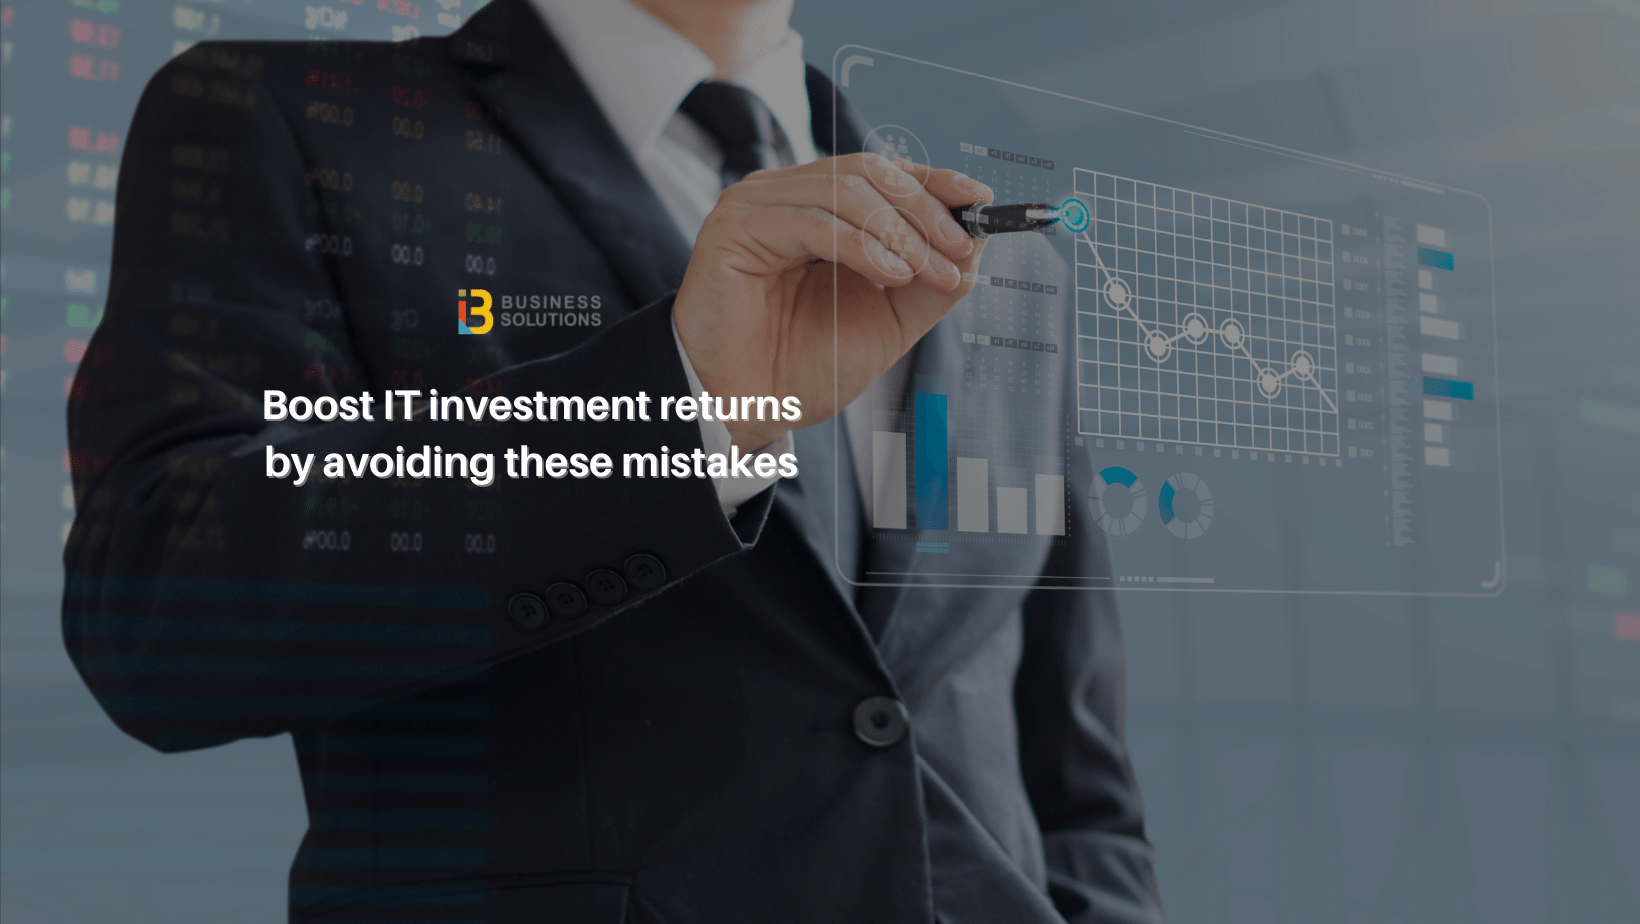 Boost IT investment returns by avoiding these mistakes